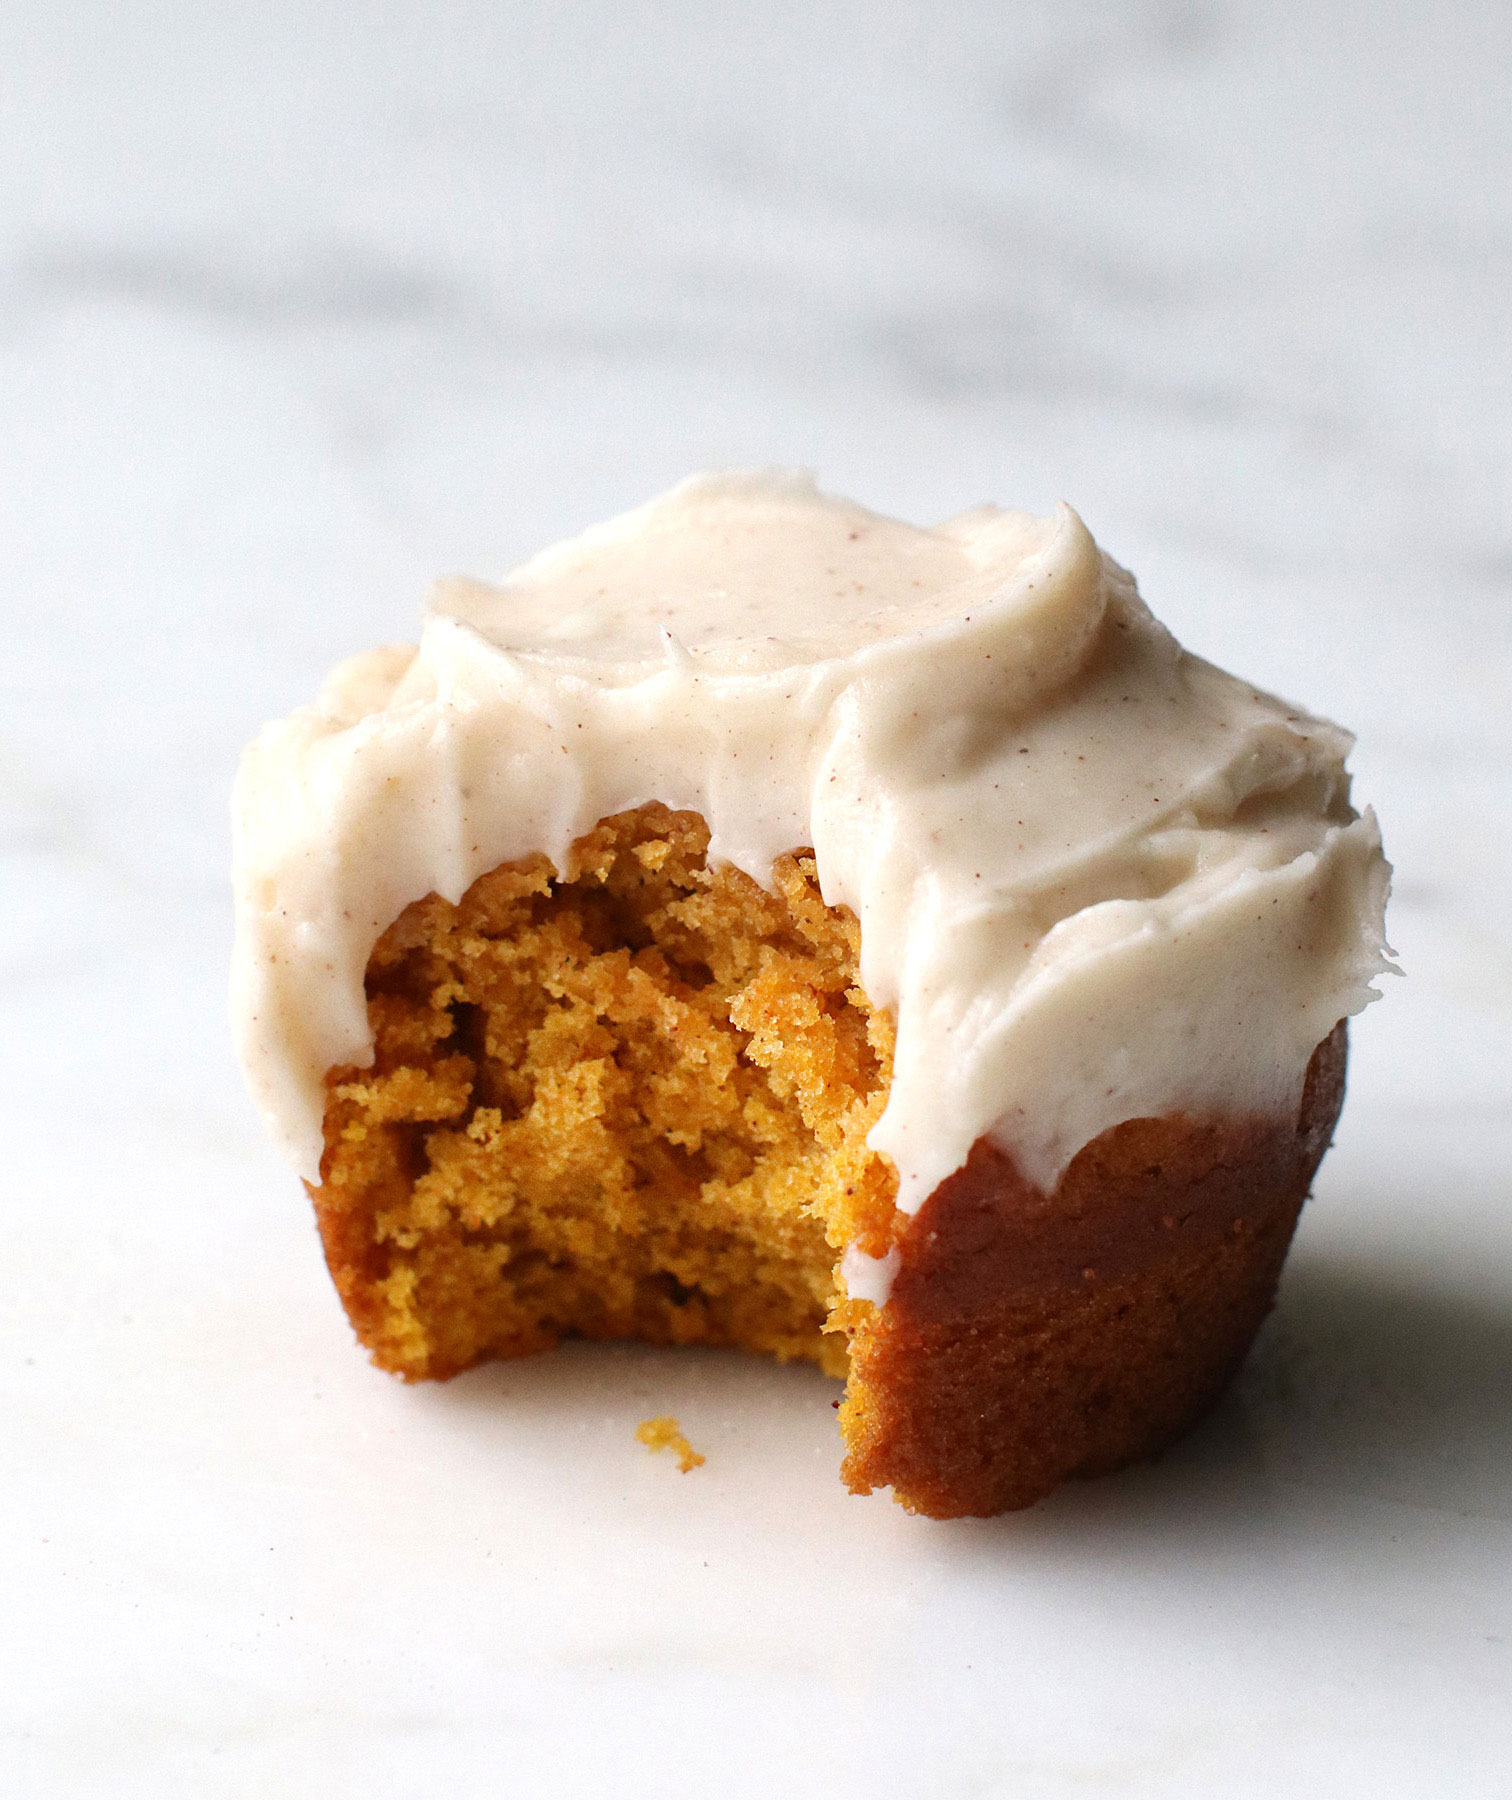 Halloween food ideas, easy Halloween party food - Pumpkin Muffins With Cinnamon Cream Cheese Frosting